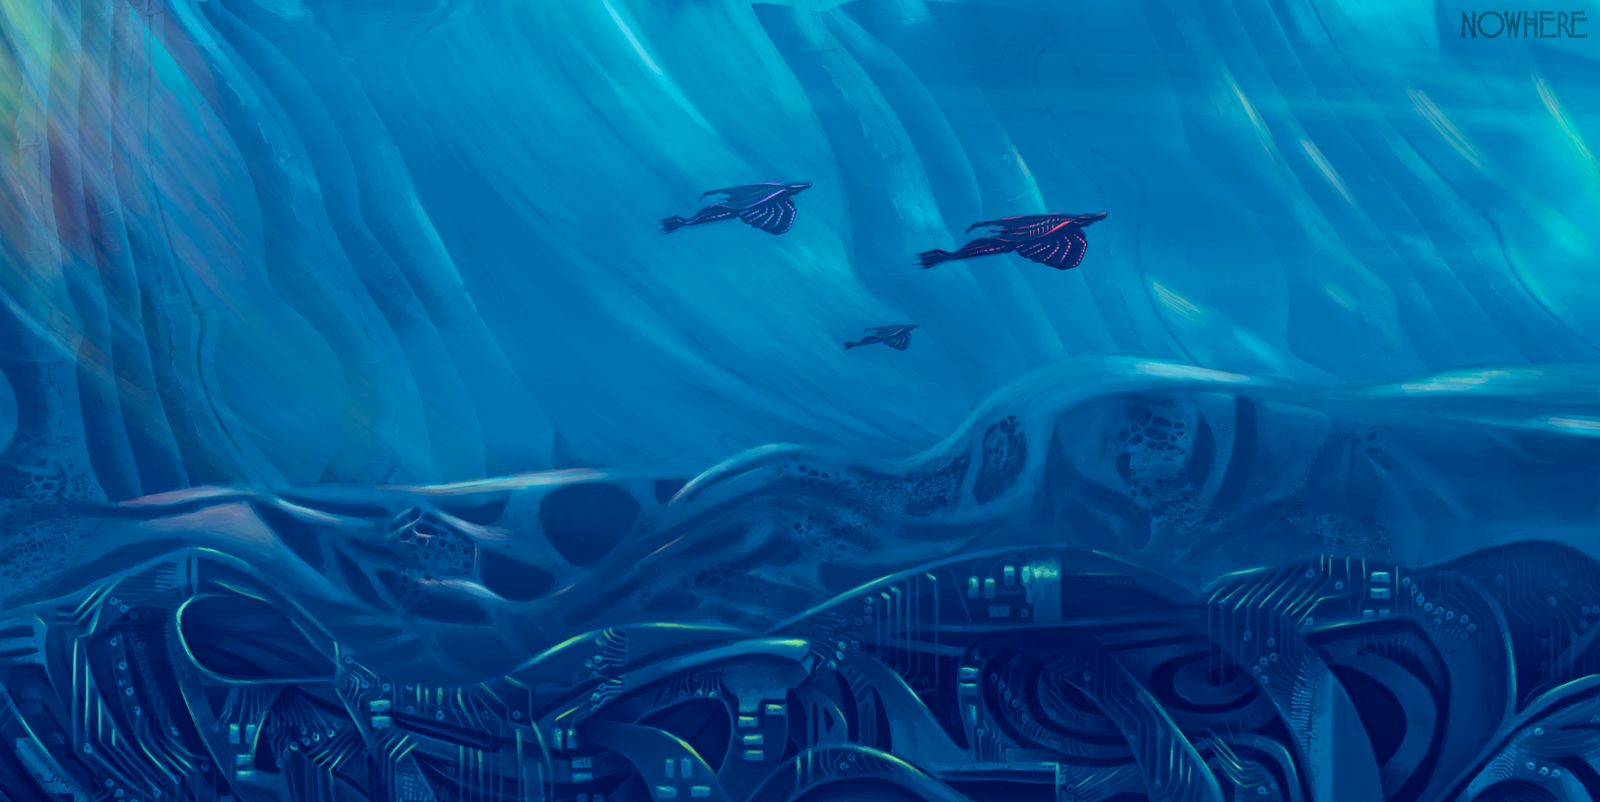 Environment Concept Art 2 by SylviaRitter